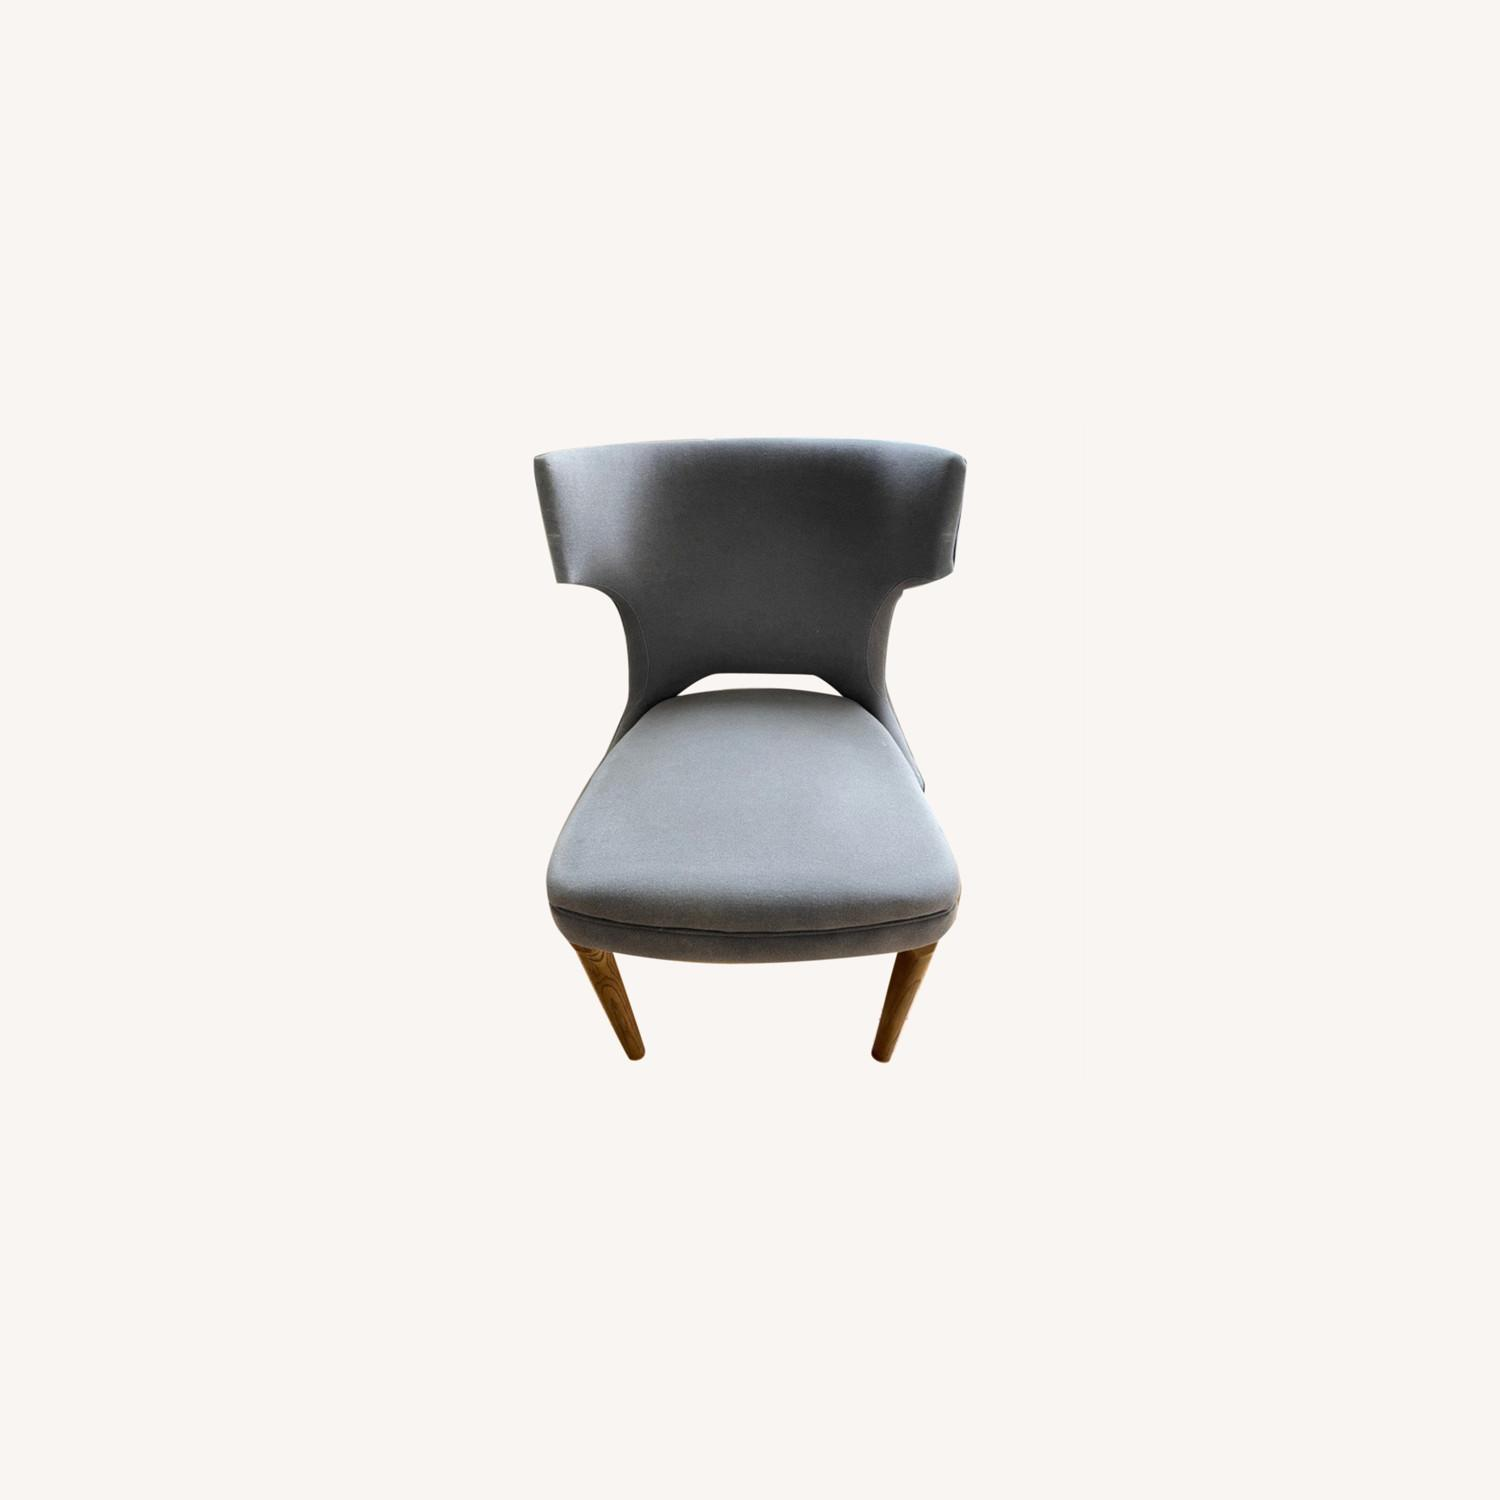 West Elm Nailhead Upholstered Chair - image-0